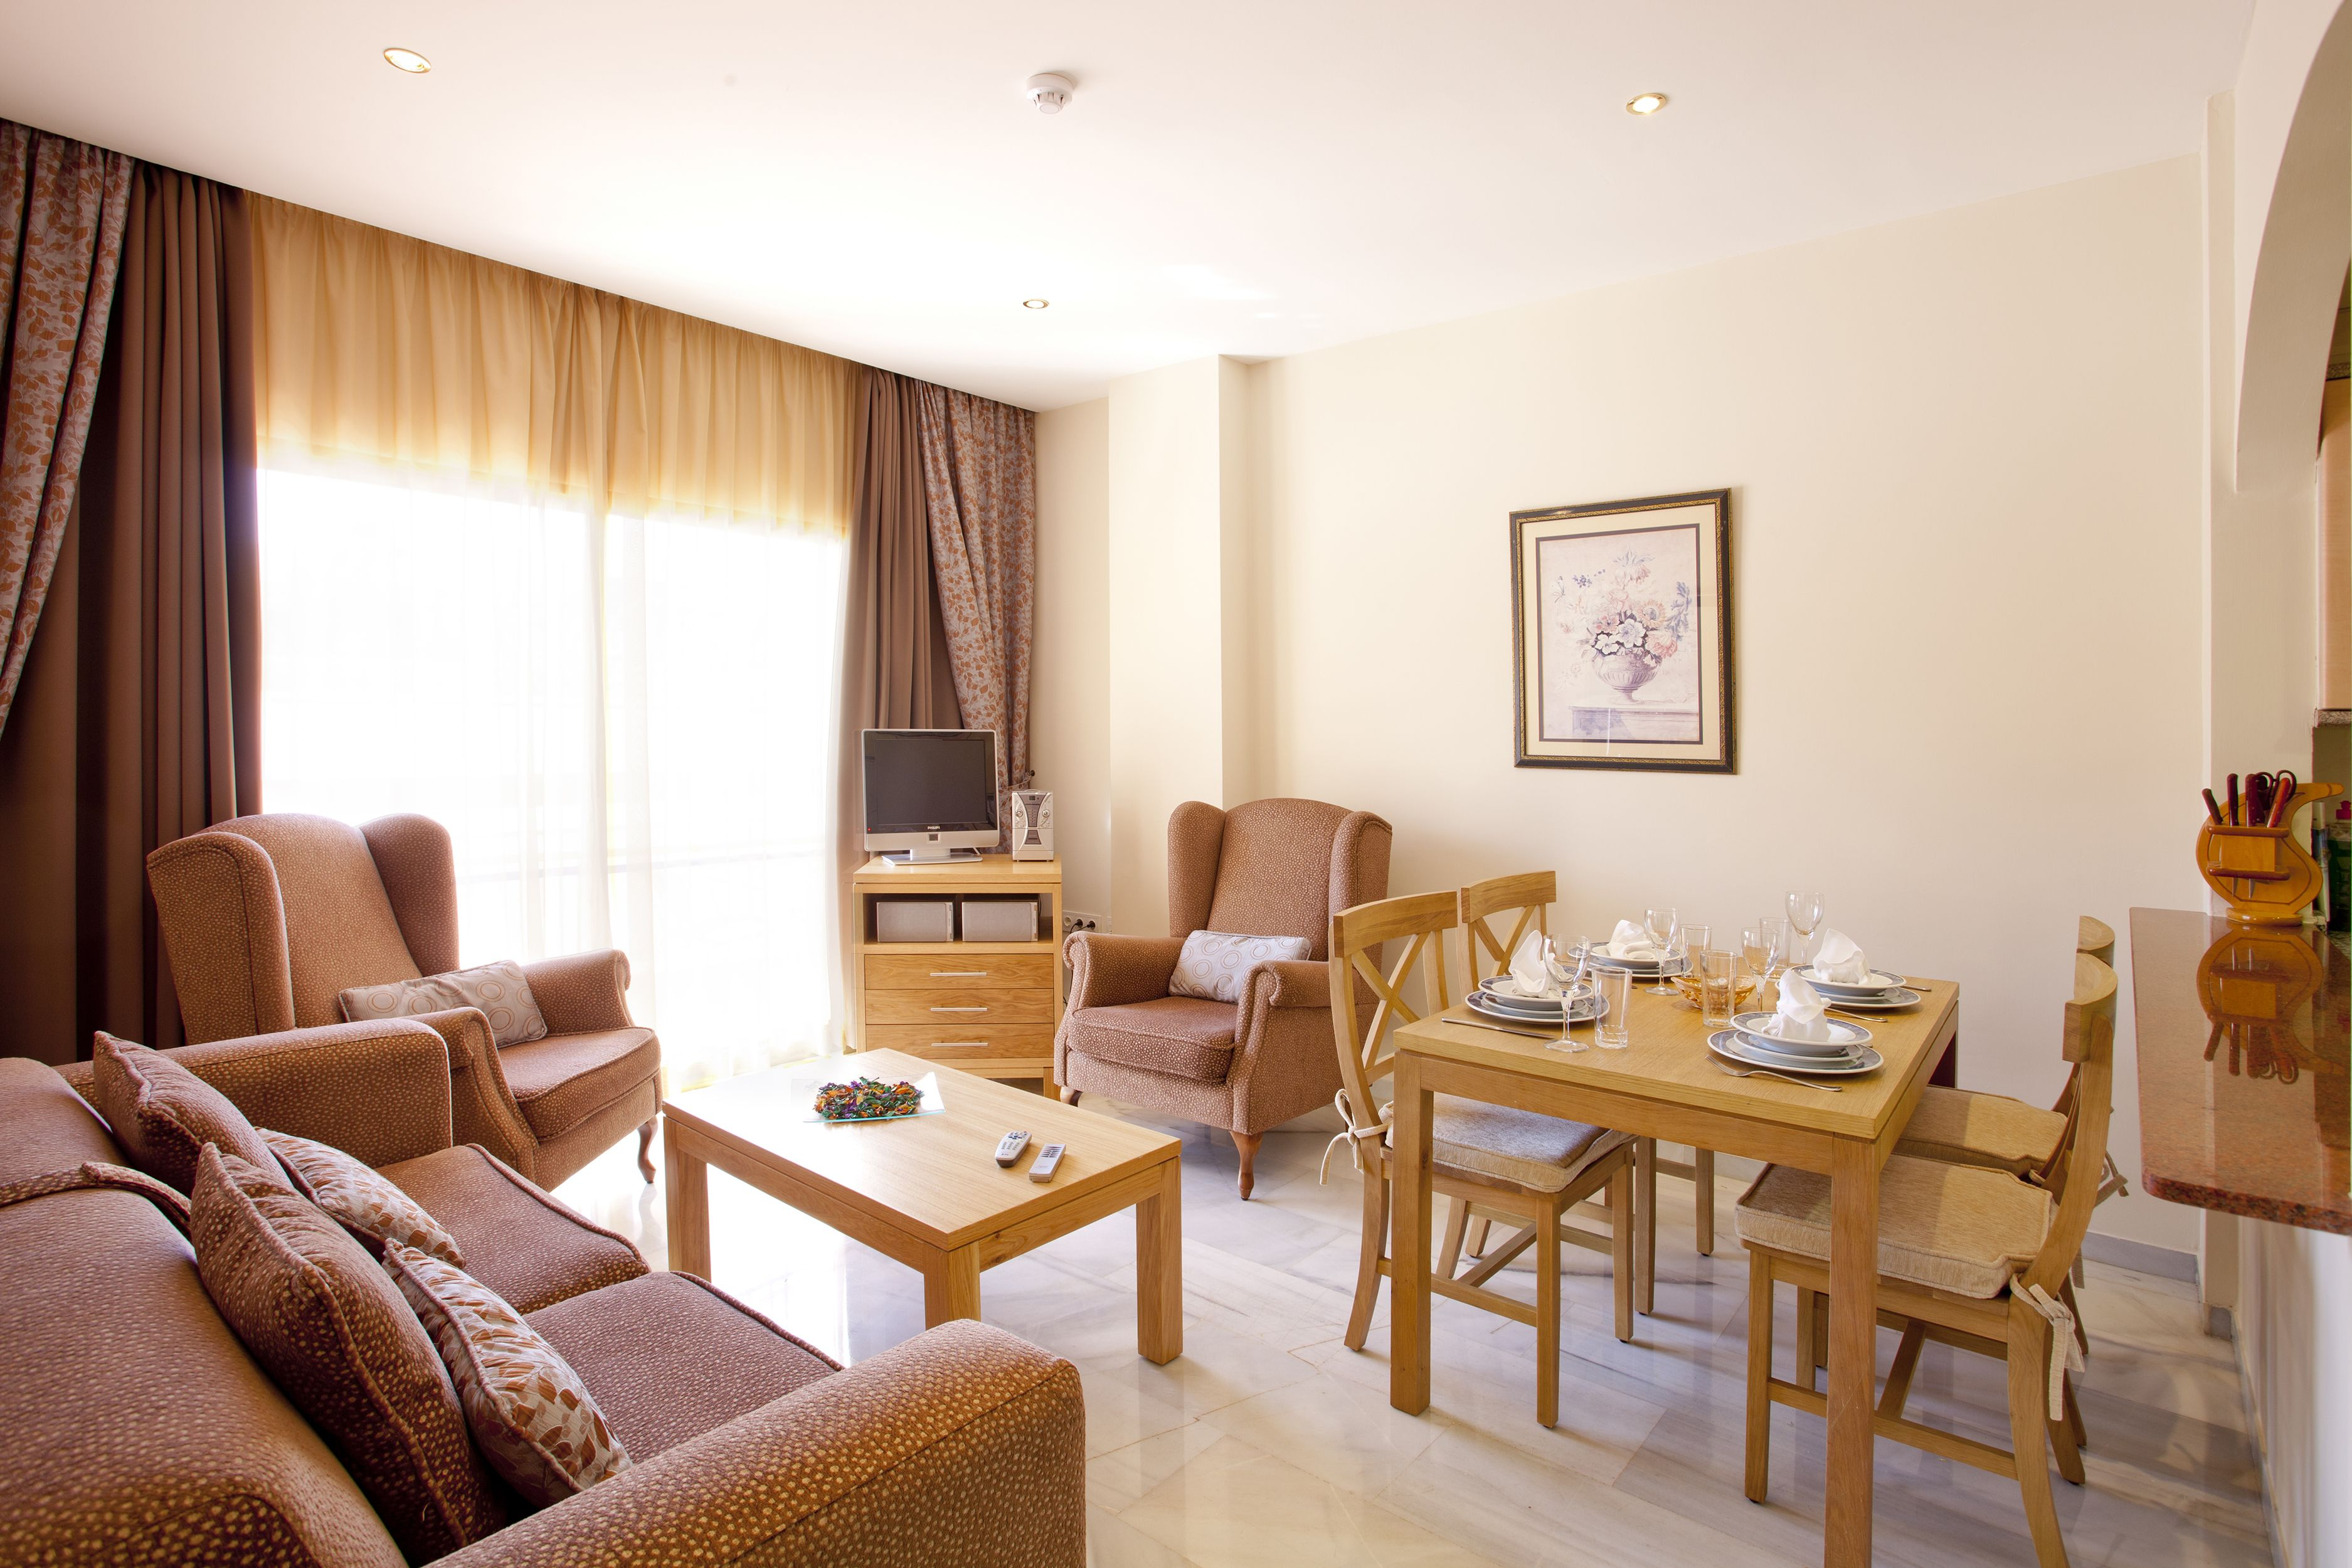 A 2 Bedroom Apartment At Sunset Beach Club Two Bedroom Apartments Hotel Apartment 2 Bedroom Apartment